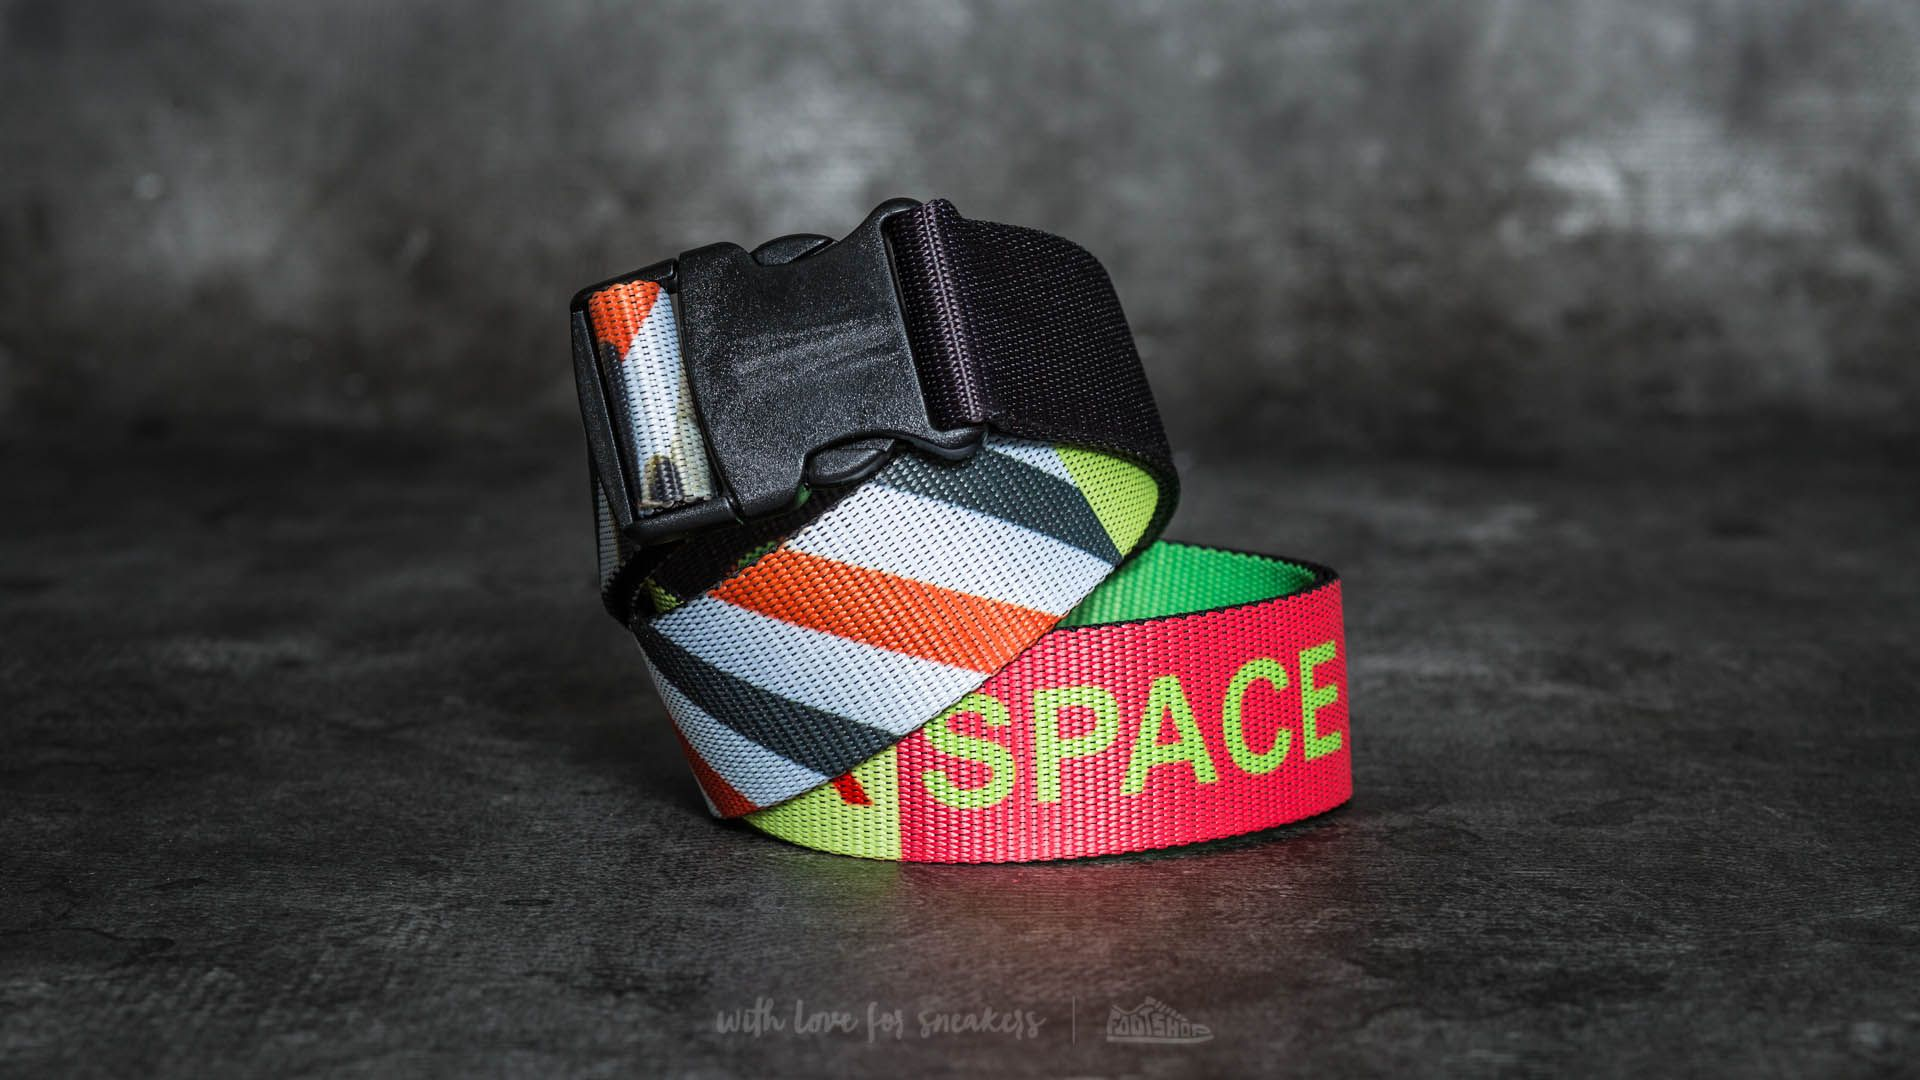 Footshop x LAFORMELA Belt